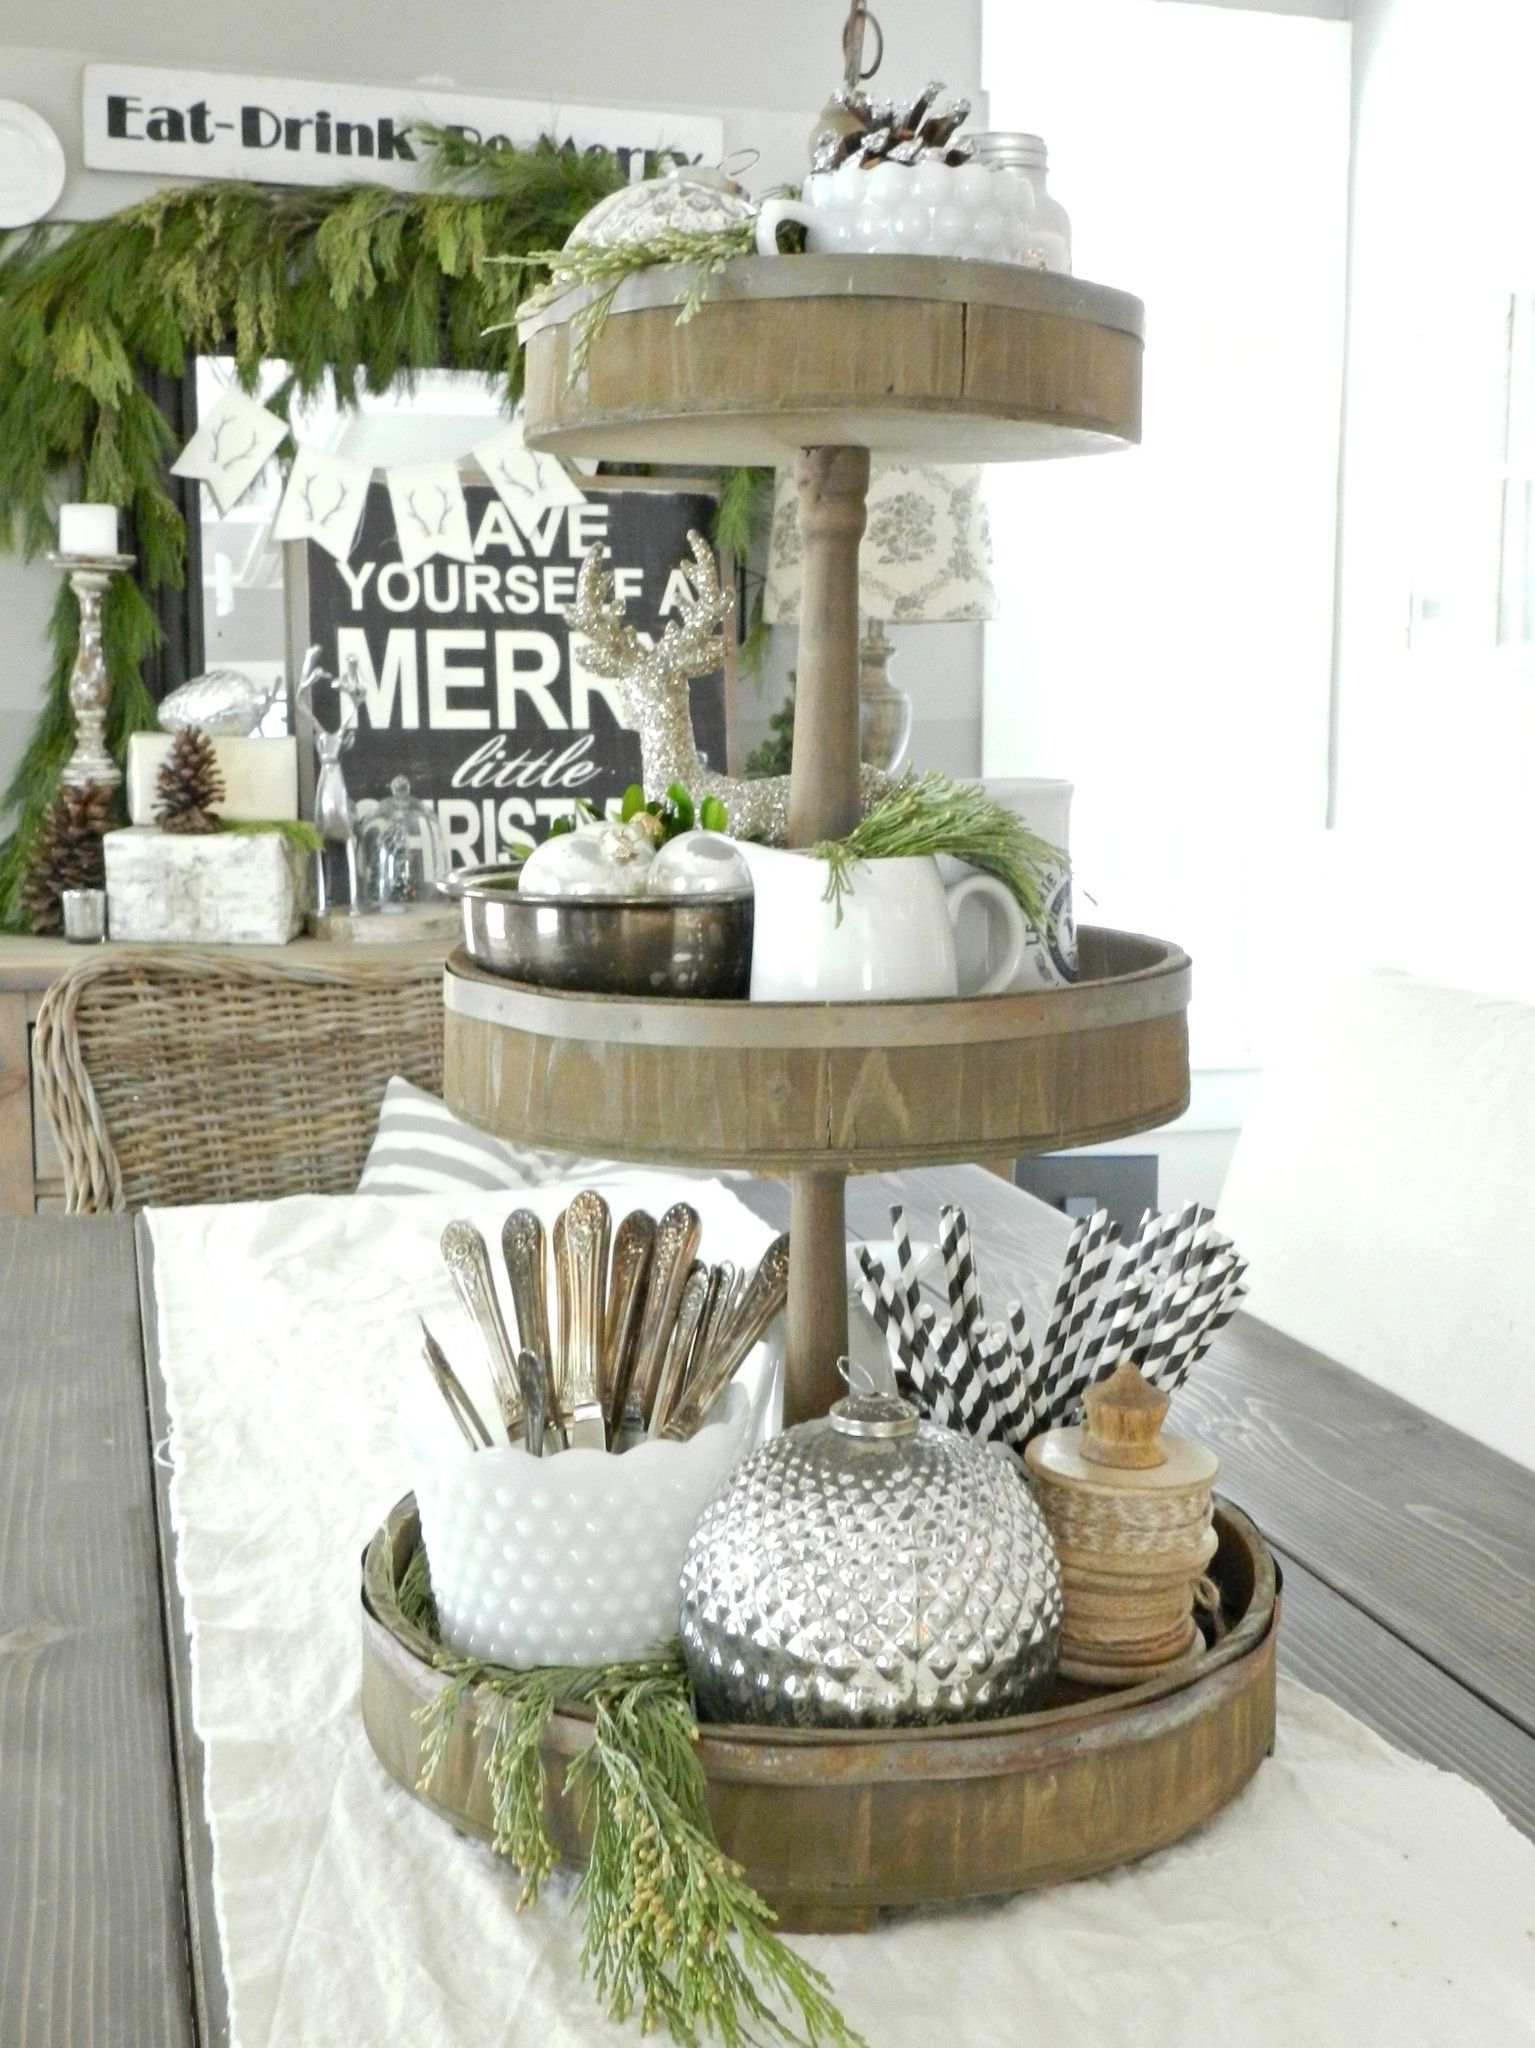 Rustic Farmhouse Perfection We Love Tiered Trays For Their Stunning Ability To Display All Of The Things We Love W Tiered Tray Decor Tiered Tray Tiered Stand